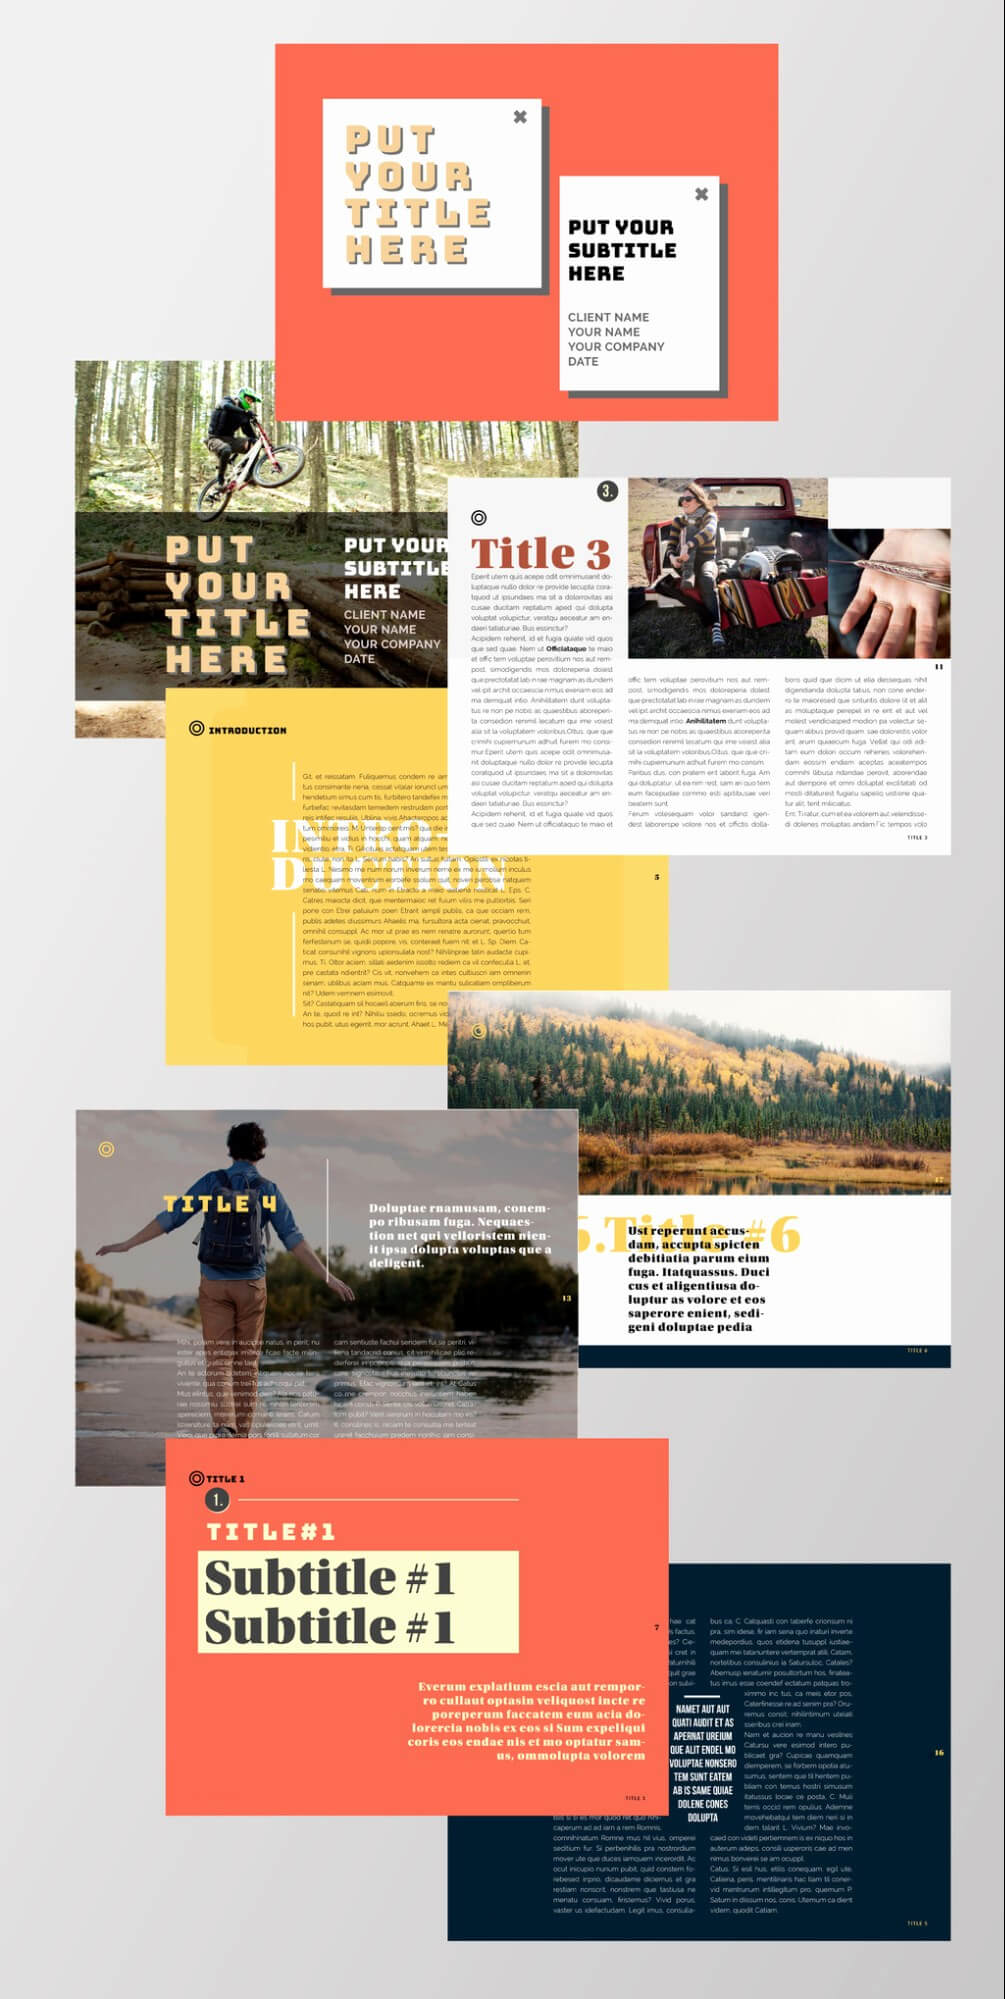 003 Free Magazine Template For Microsoft Word Electrical Regarding Magazine Template For Microsoft Word